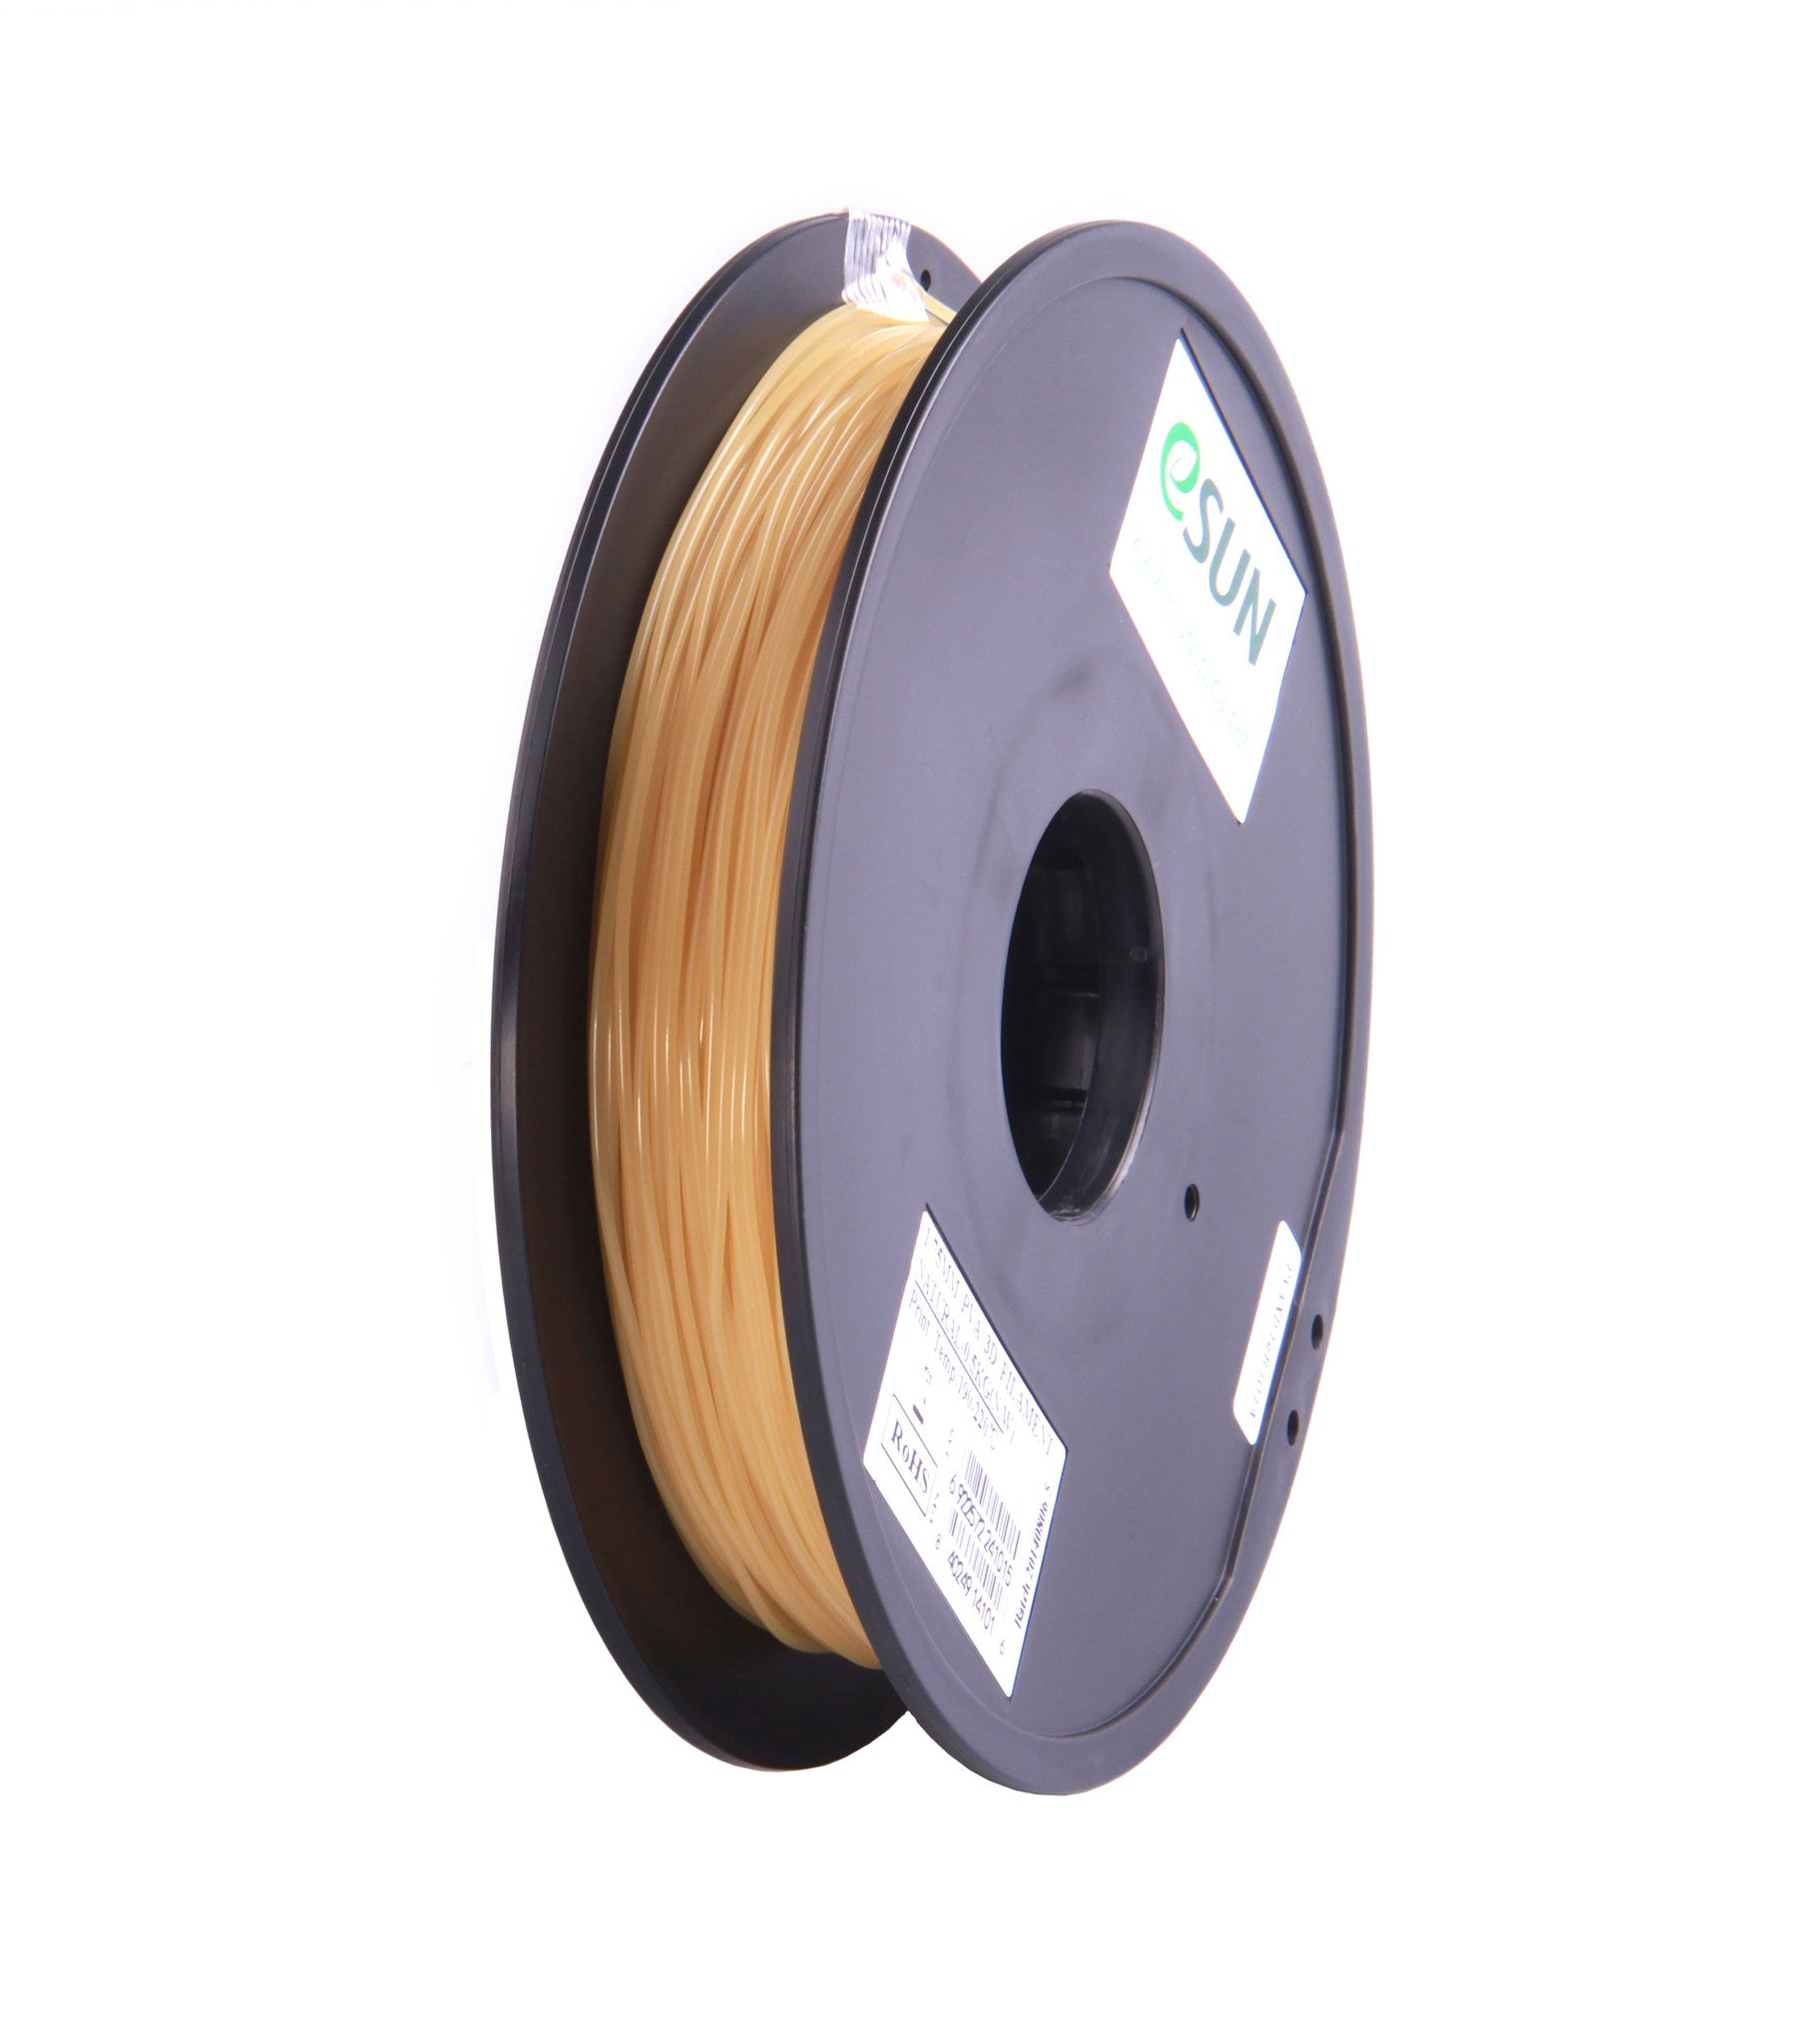 eSUN 3D Printing Filament PVA Natural 0.5KG for 3D Printers 1.75mm Water Soluble Support